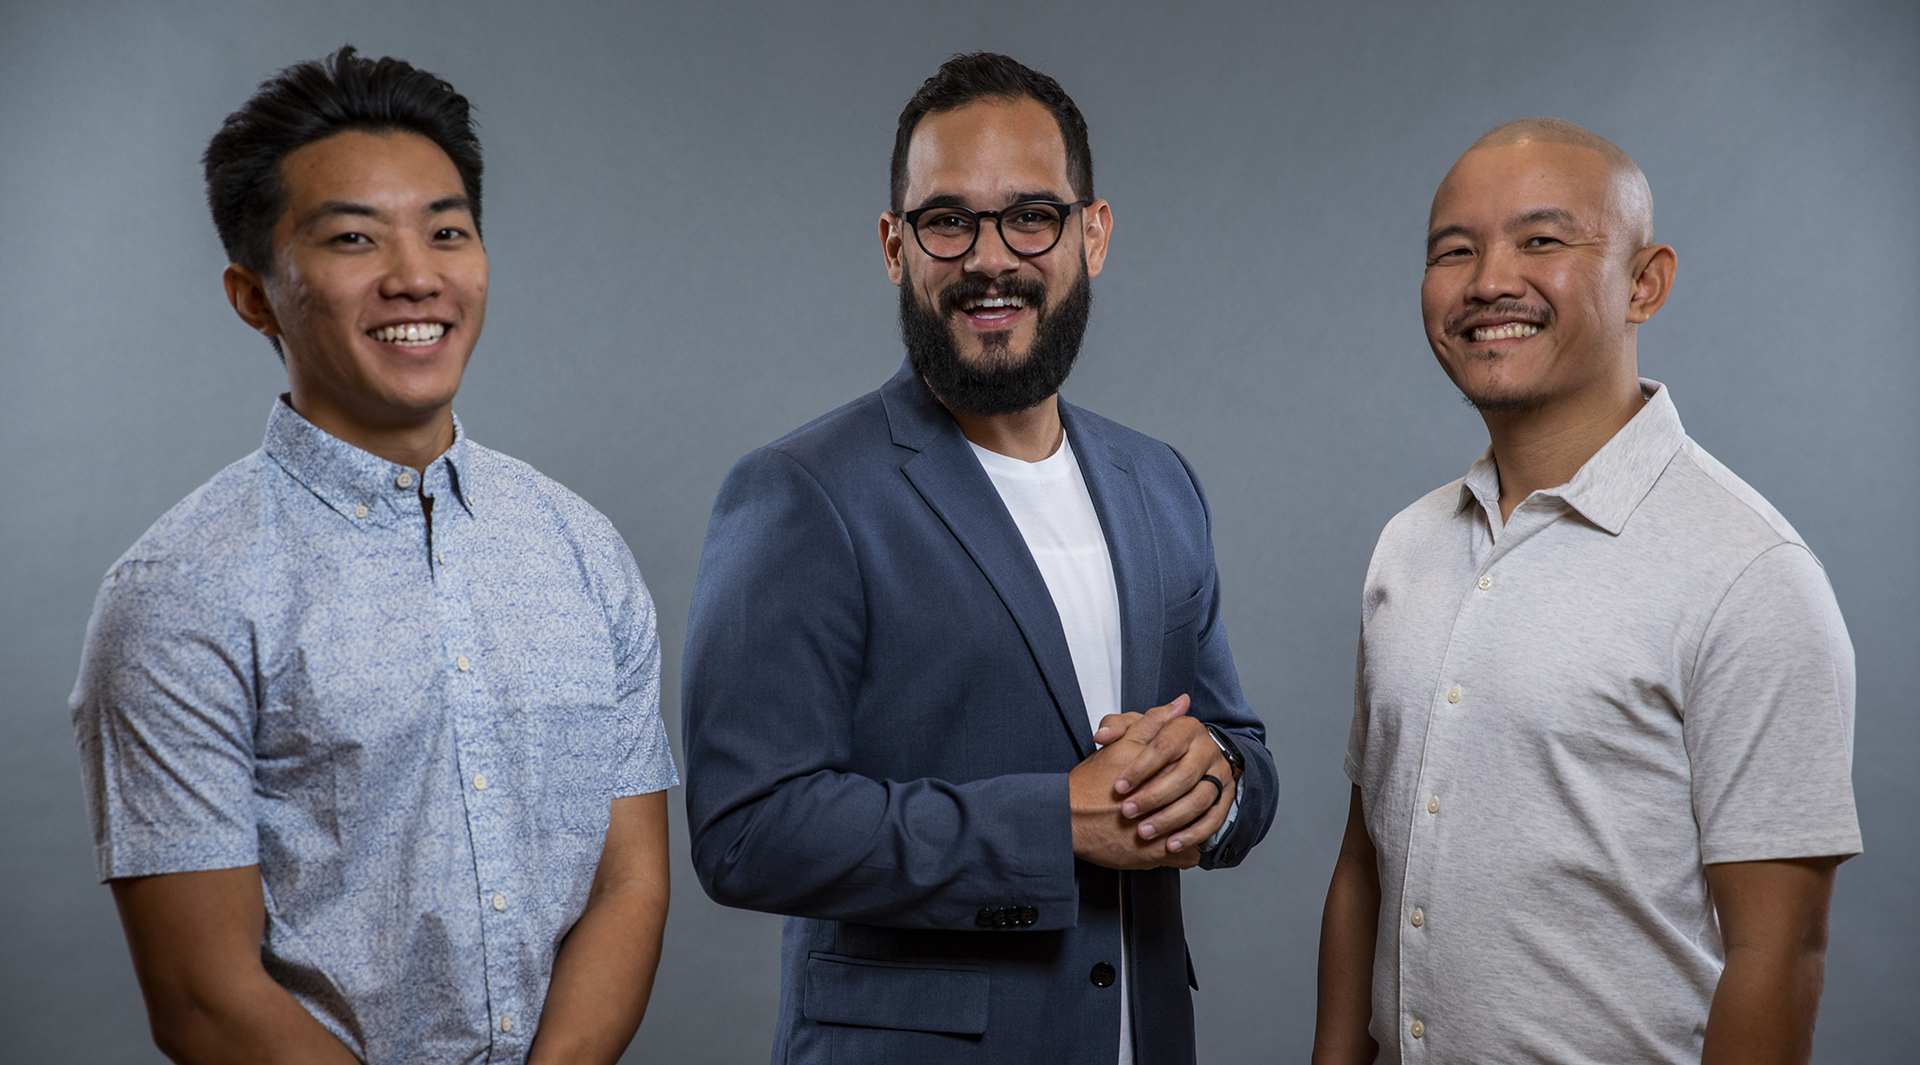 Welcome's founders, Roberto Ortiz, Jerry Shen and Tiger Shen in front of a light blue background.